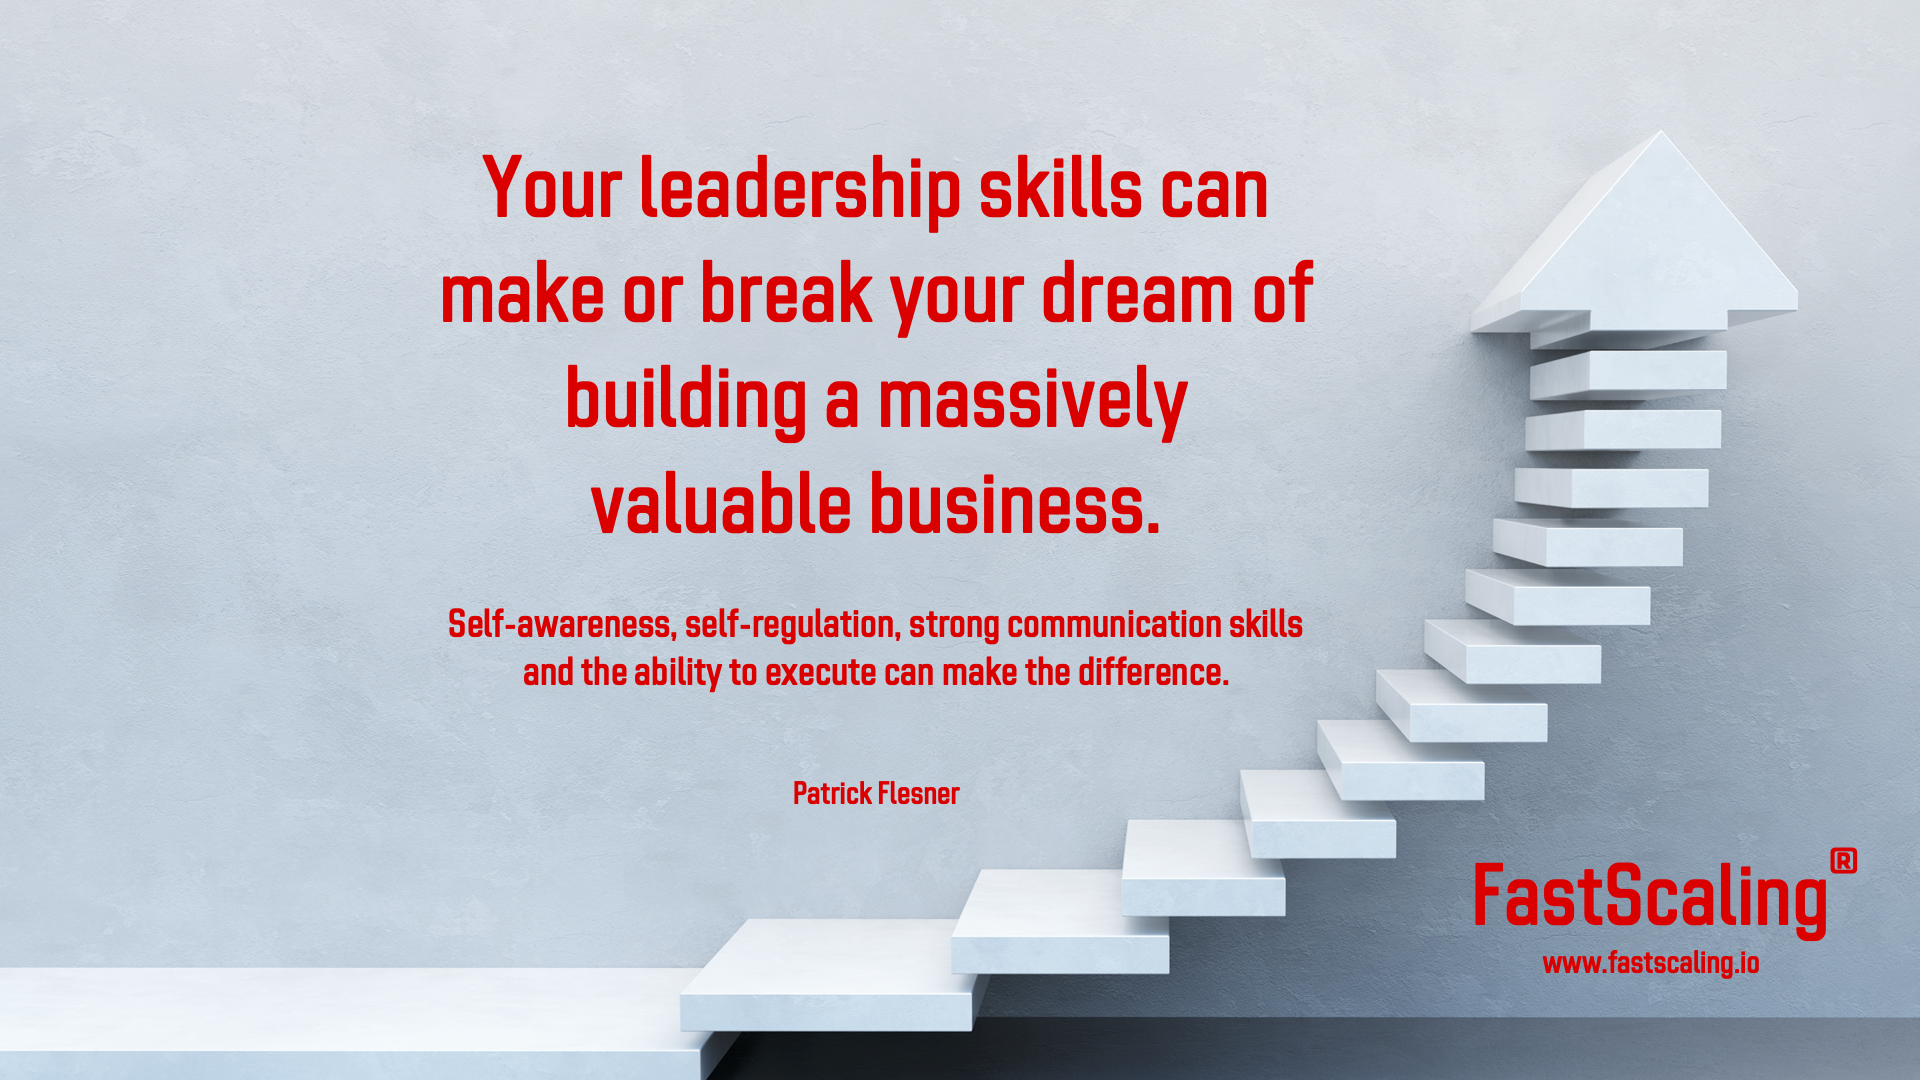 Strong Leadership Skills Can Make or Break Your High Growth Dream